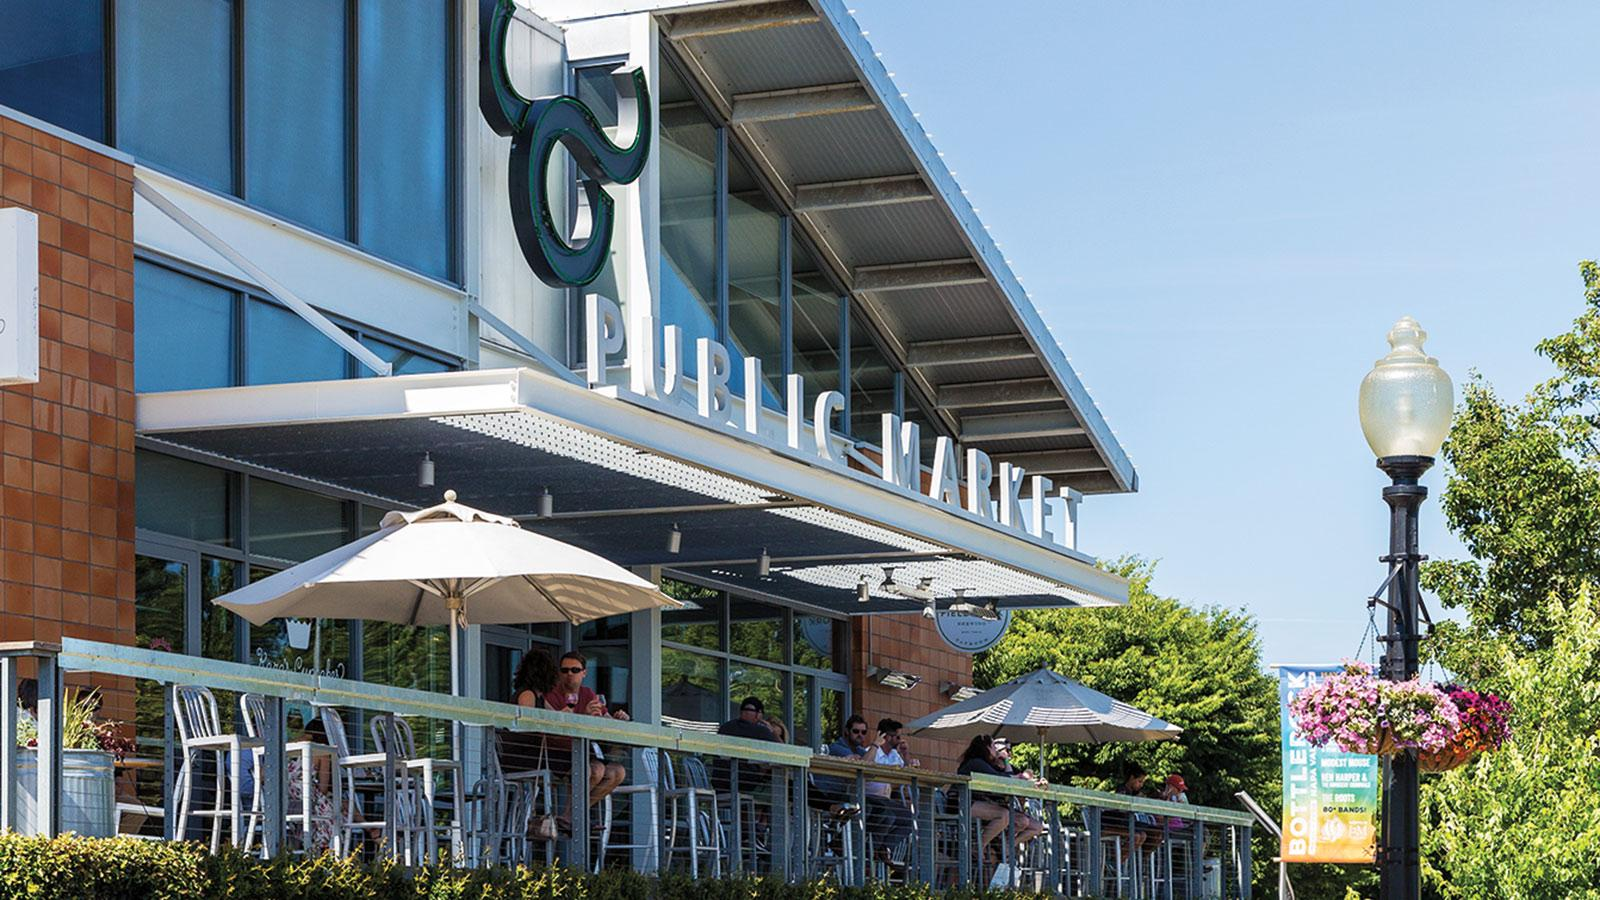 Napa Travel Guide Oxbow Public Market Features News